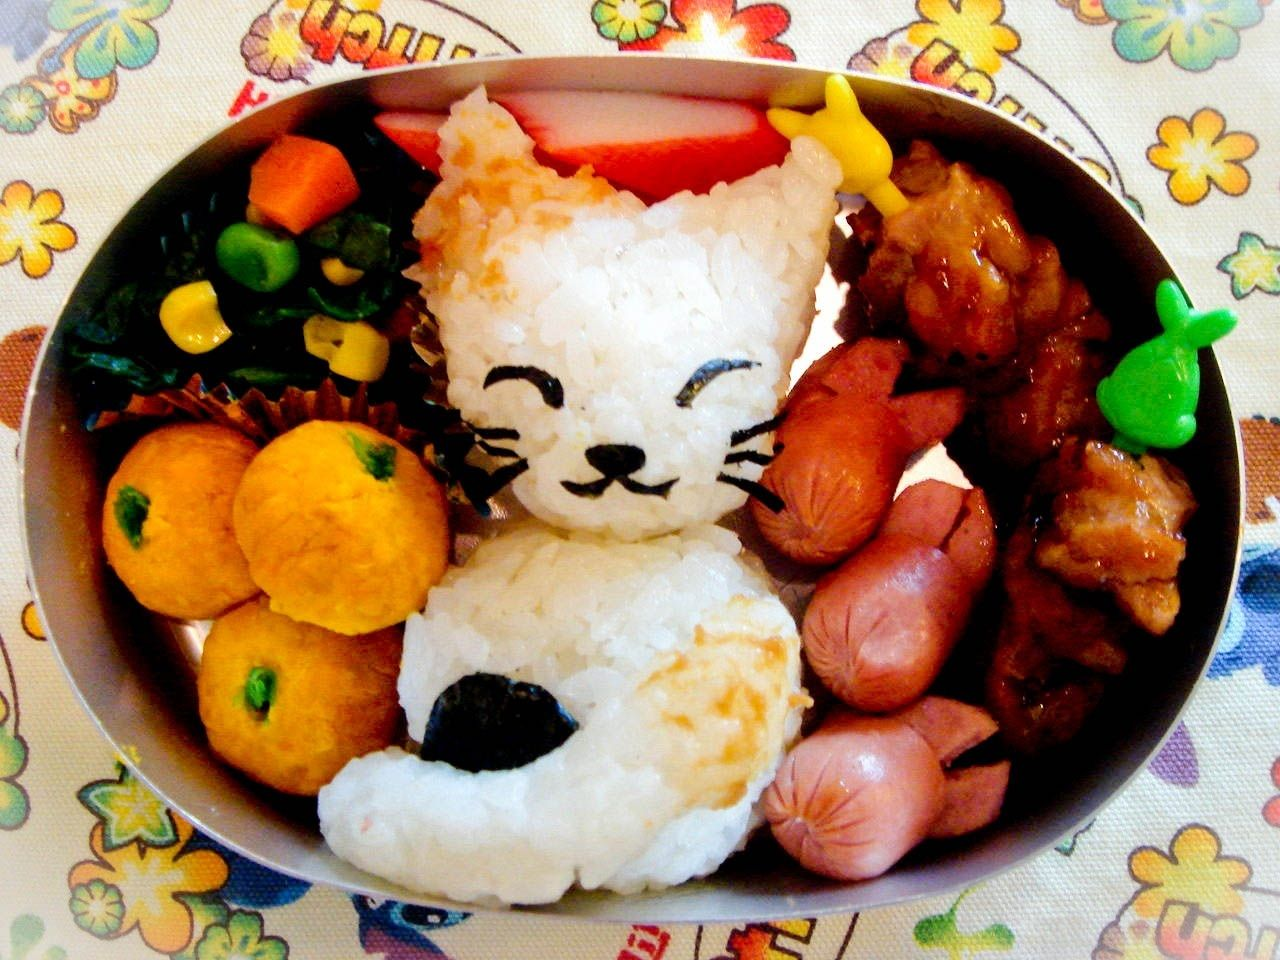 Cute japanese food pictures art kawaii food art for About japanese cuisine